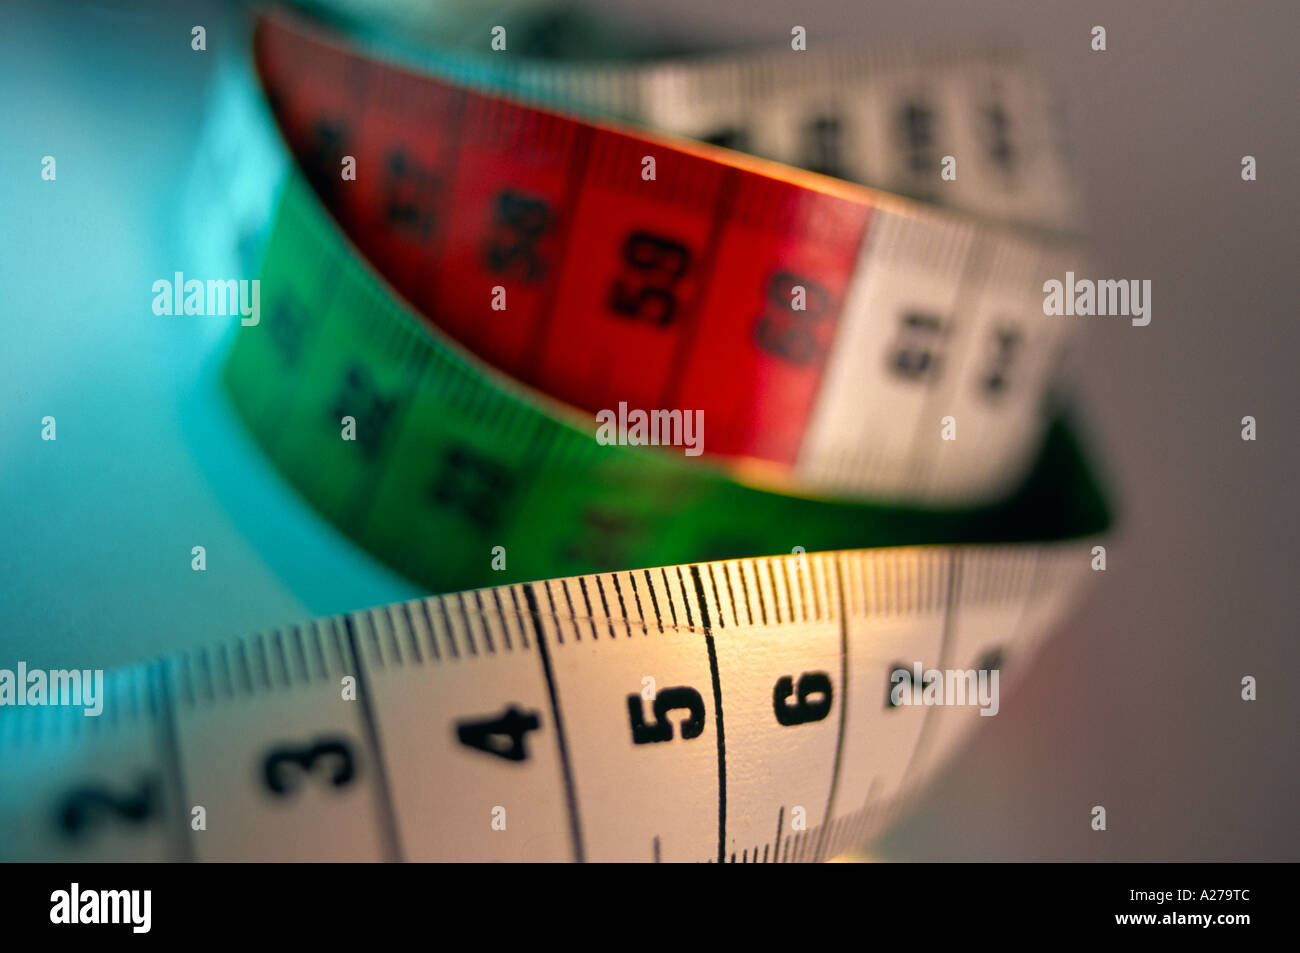 still life stilllife of a tapeline tape measure in red white and green Stock Photo